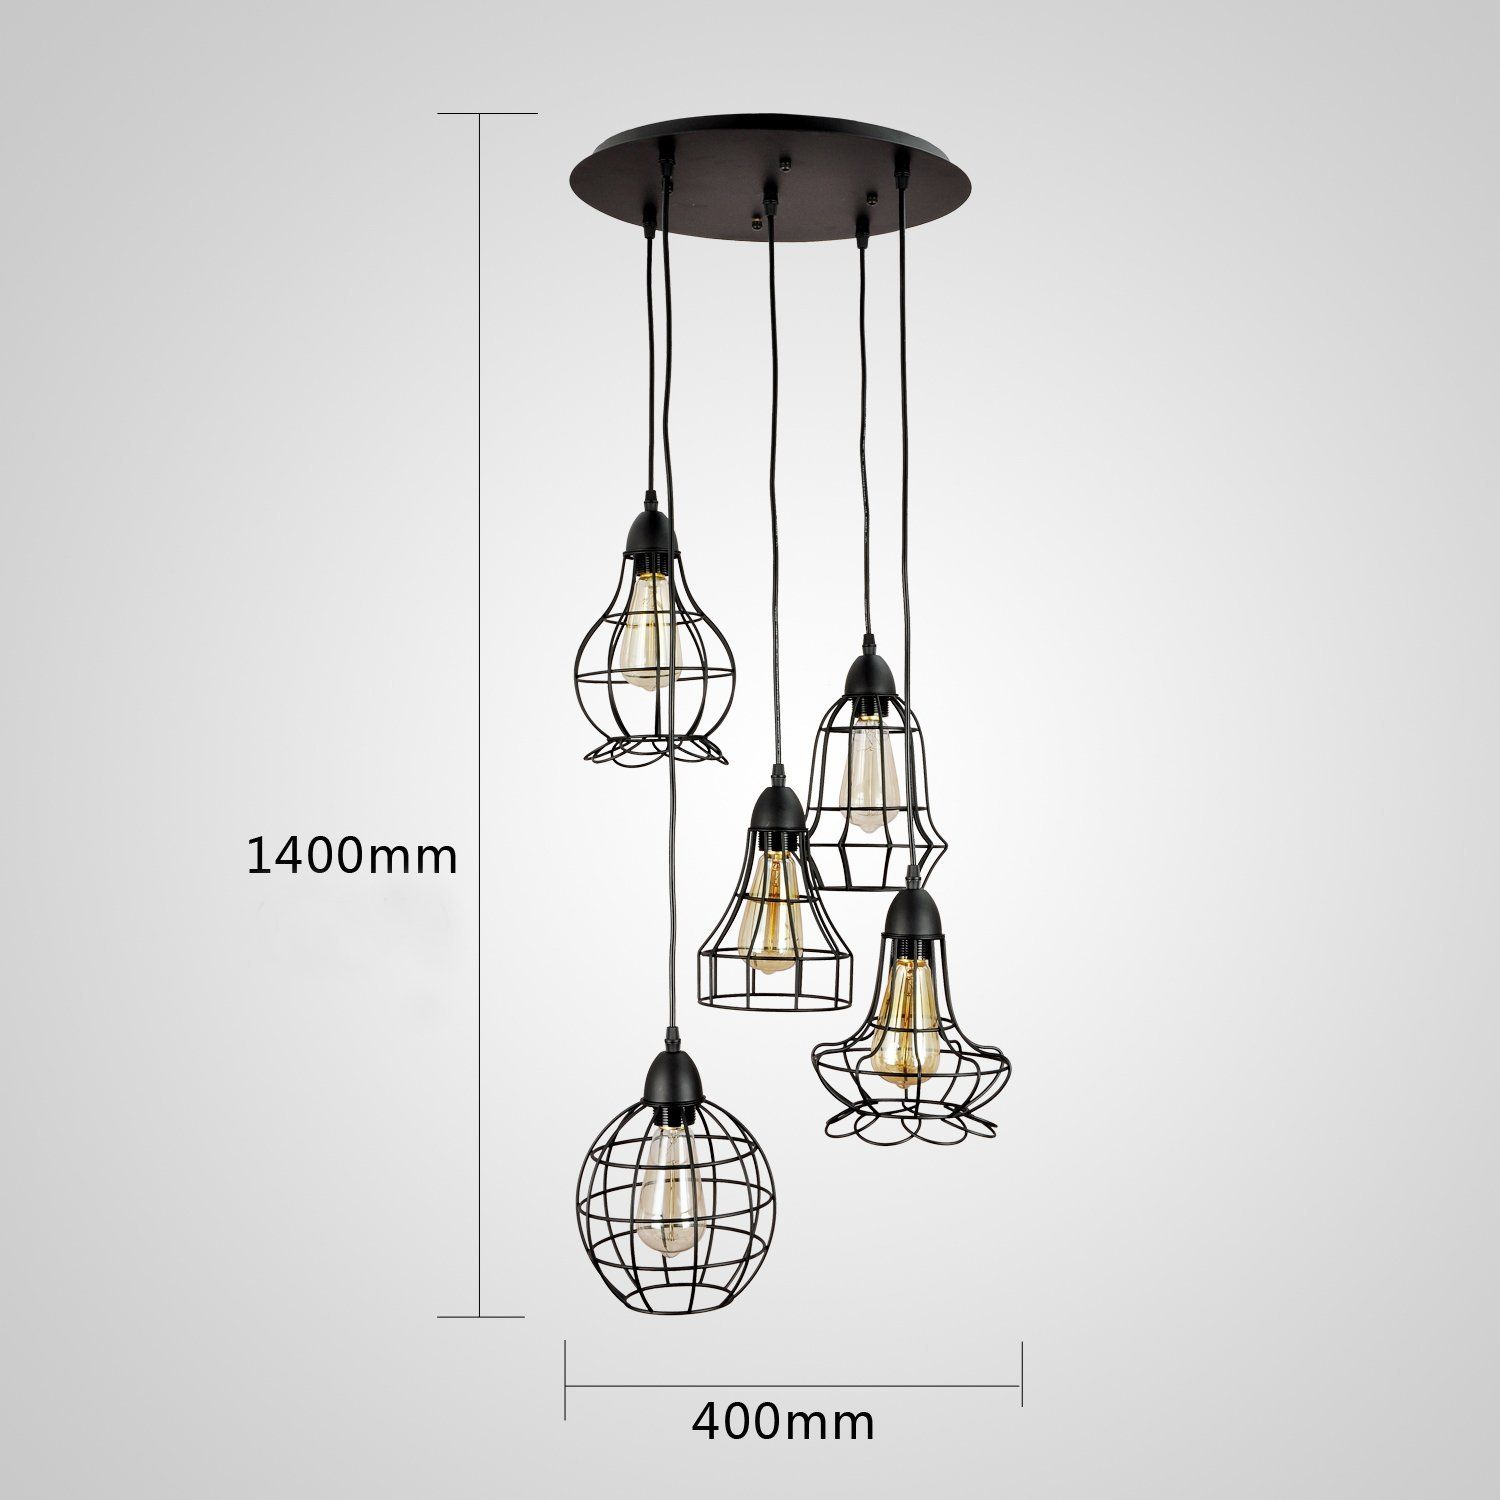 Suspension Luminaire Grand Diametre Grande Suspension Ou Lustre Vintage à 5 Ampoules En Cage